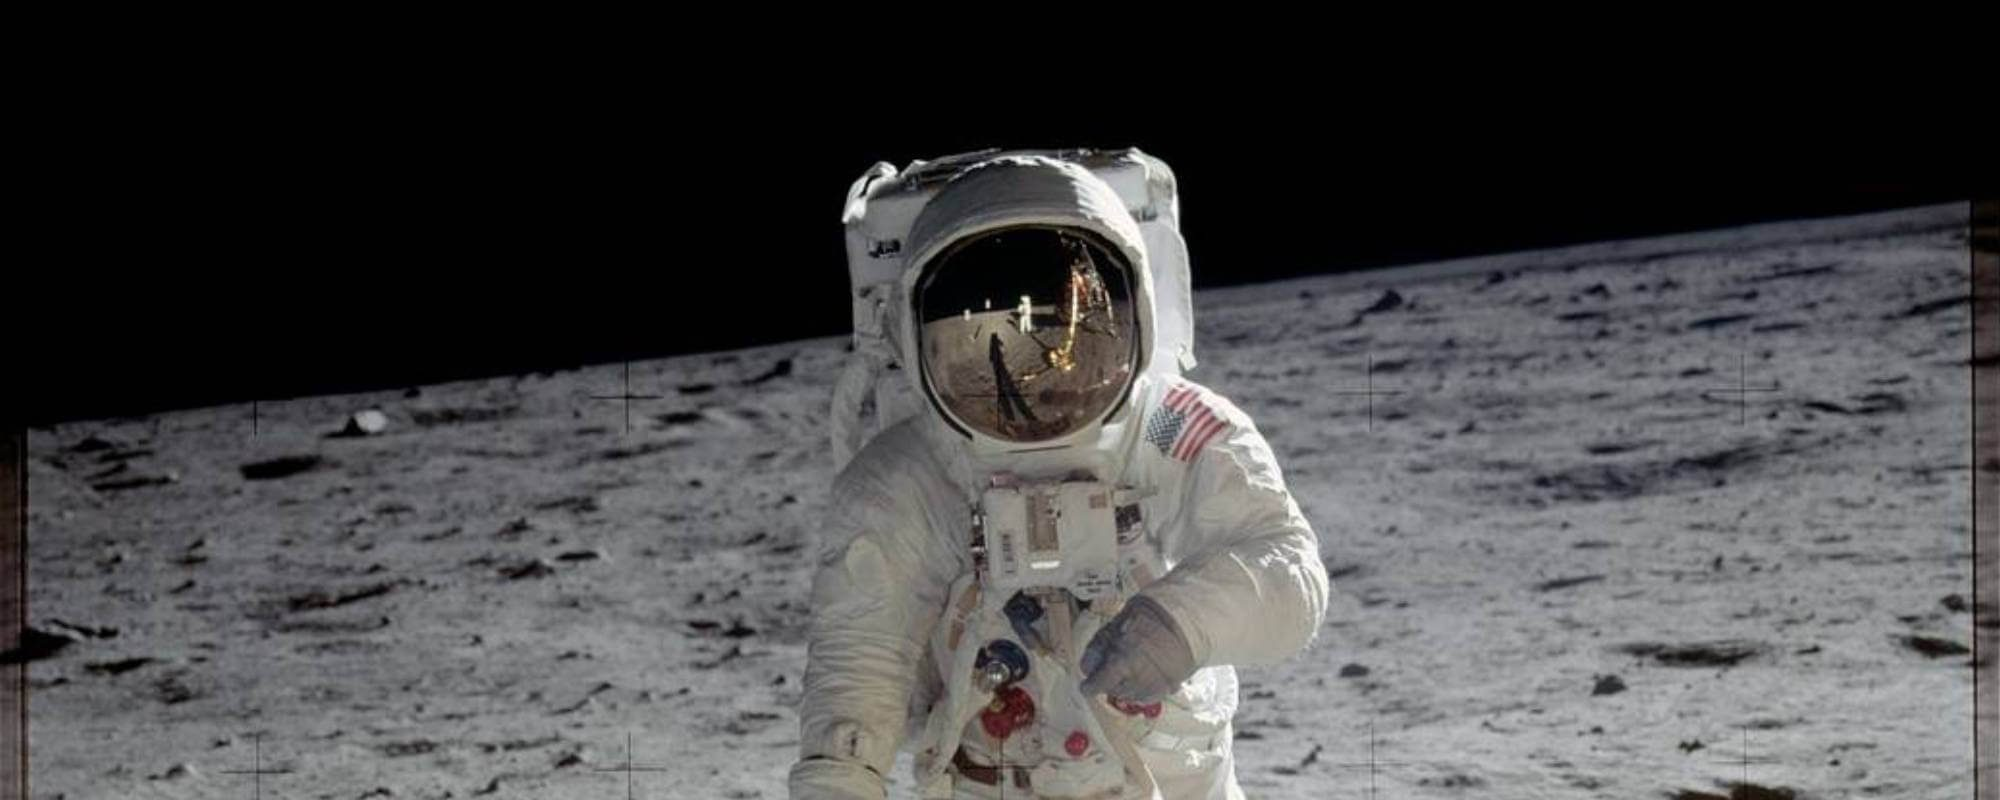 neil-armstrong-standing-on-the-moon